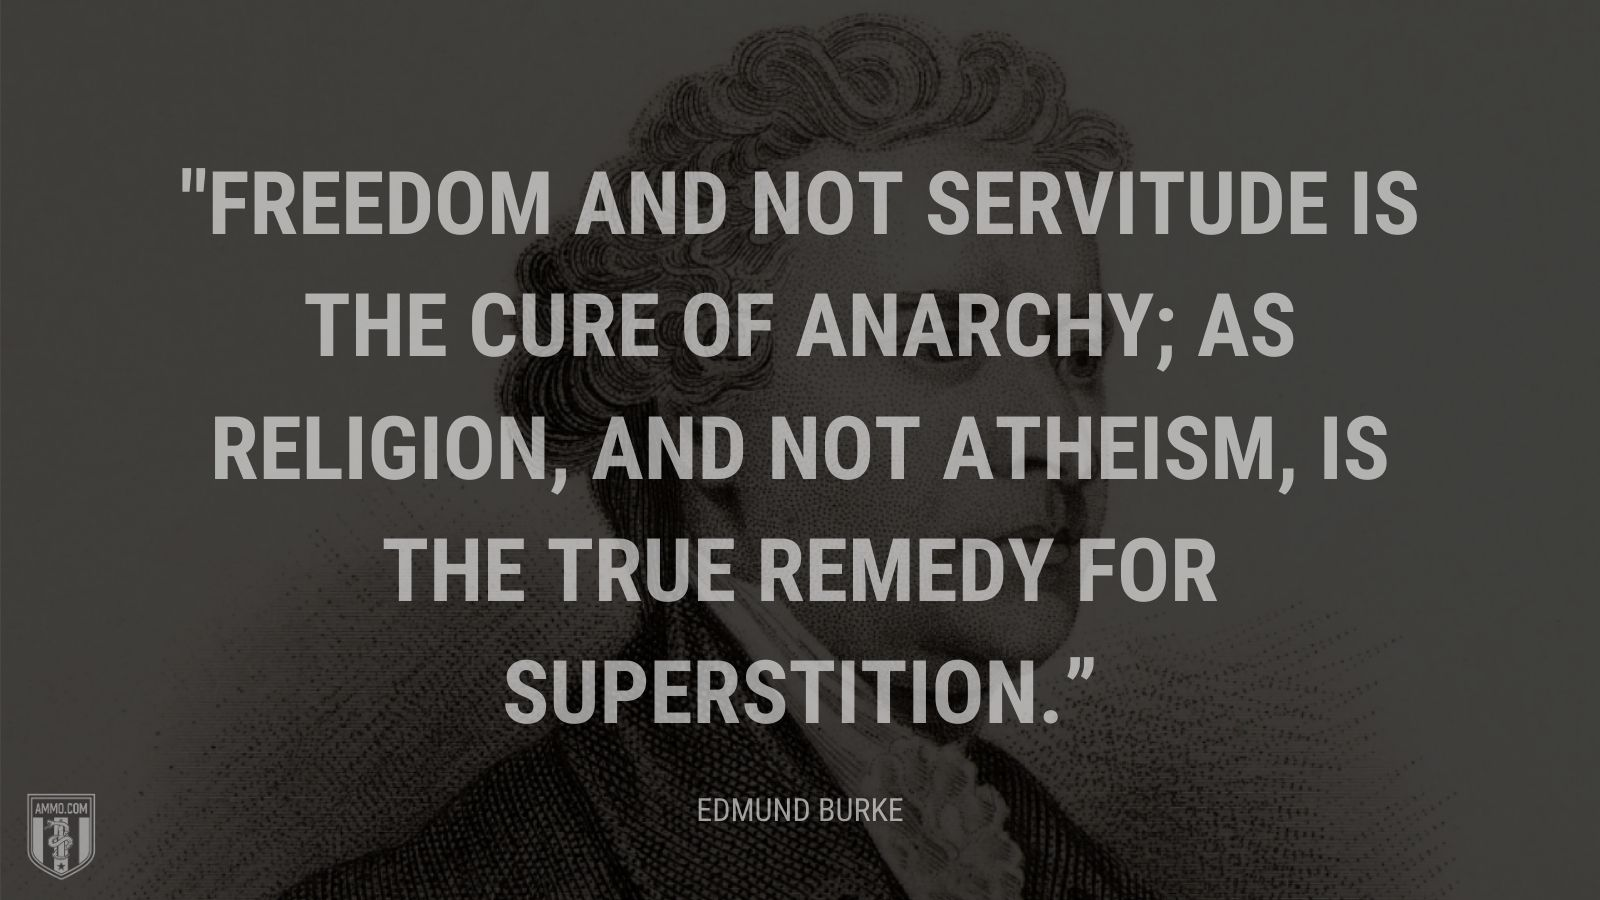 """Freedom and not servitude is the cure of anarchy; as religion, and not atheism, is the true remedy for superstition."" - Edmund Burke"